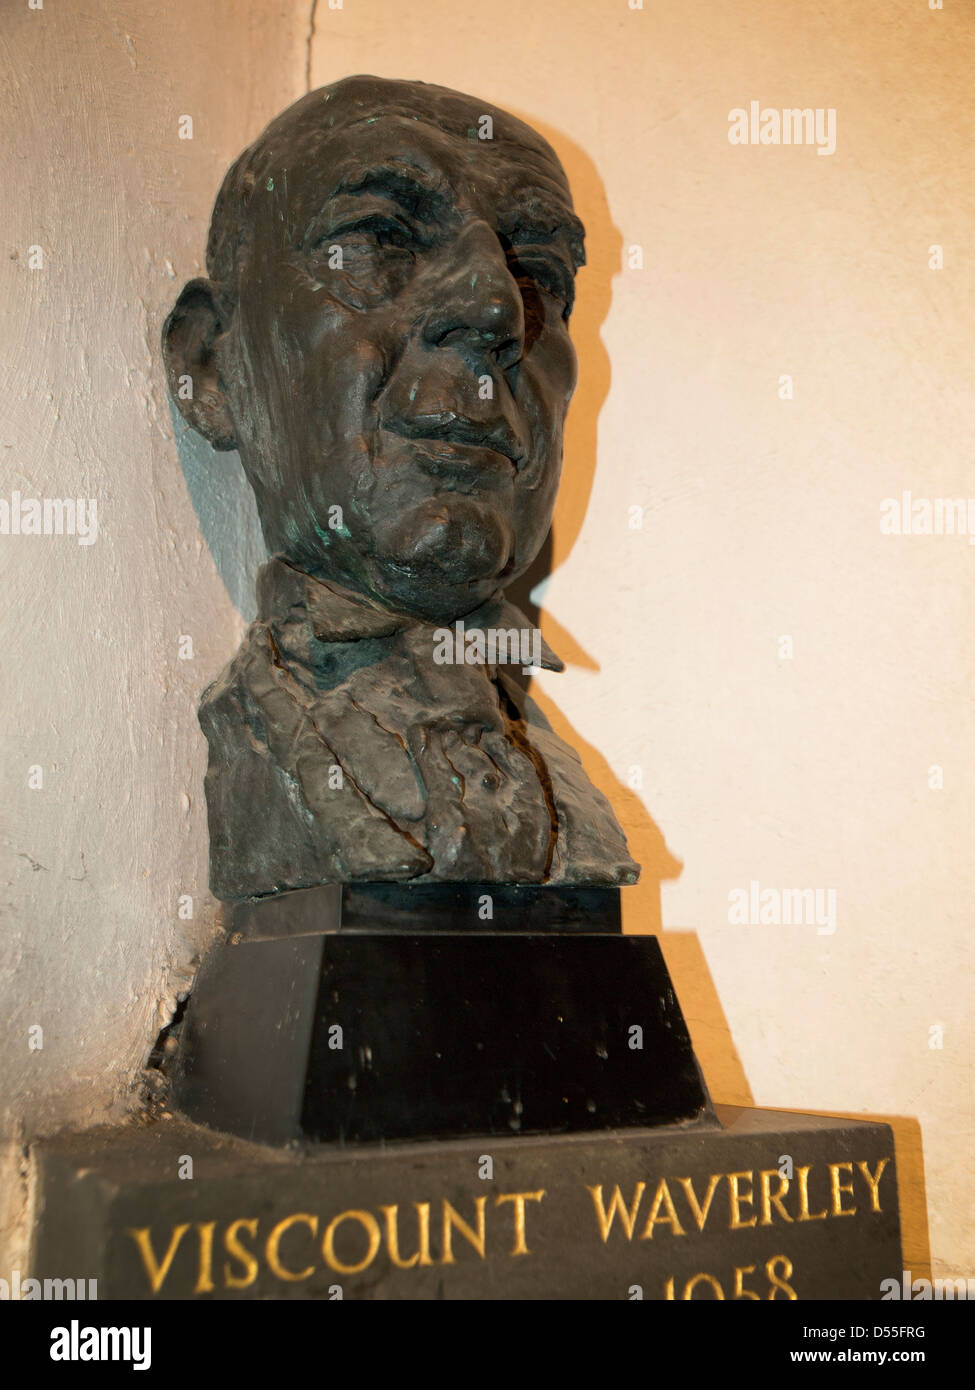 A bust of John Anderson,1st Viscount Waverley by the sculptor Jacob Epstein, in the village church of West Dean. - Stock Image